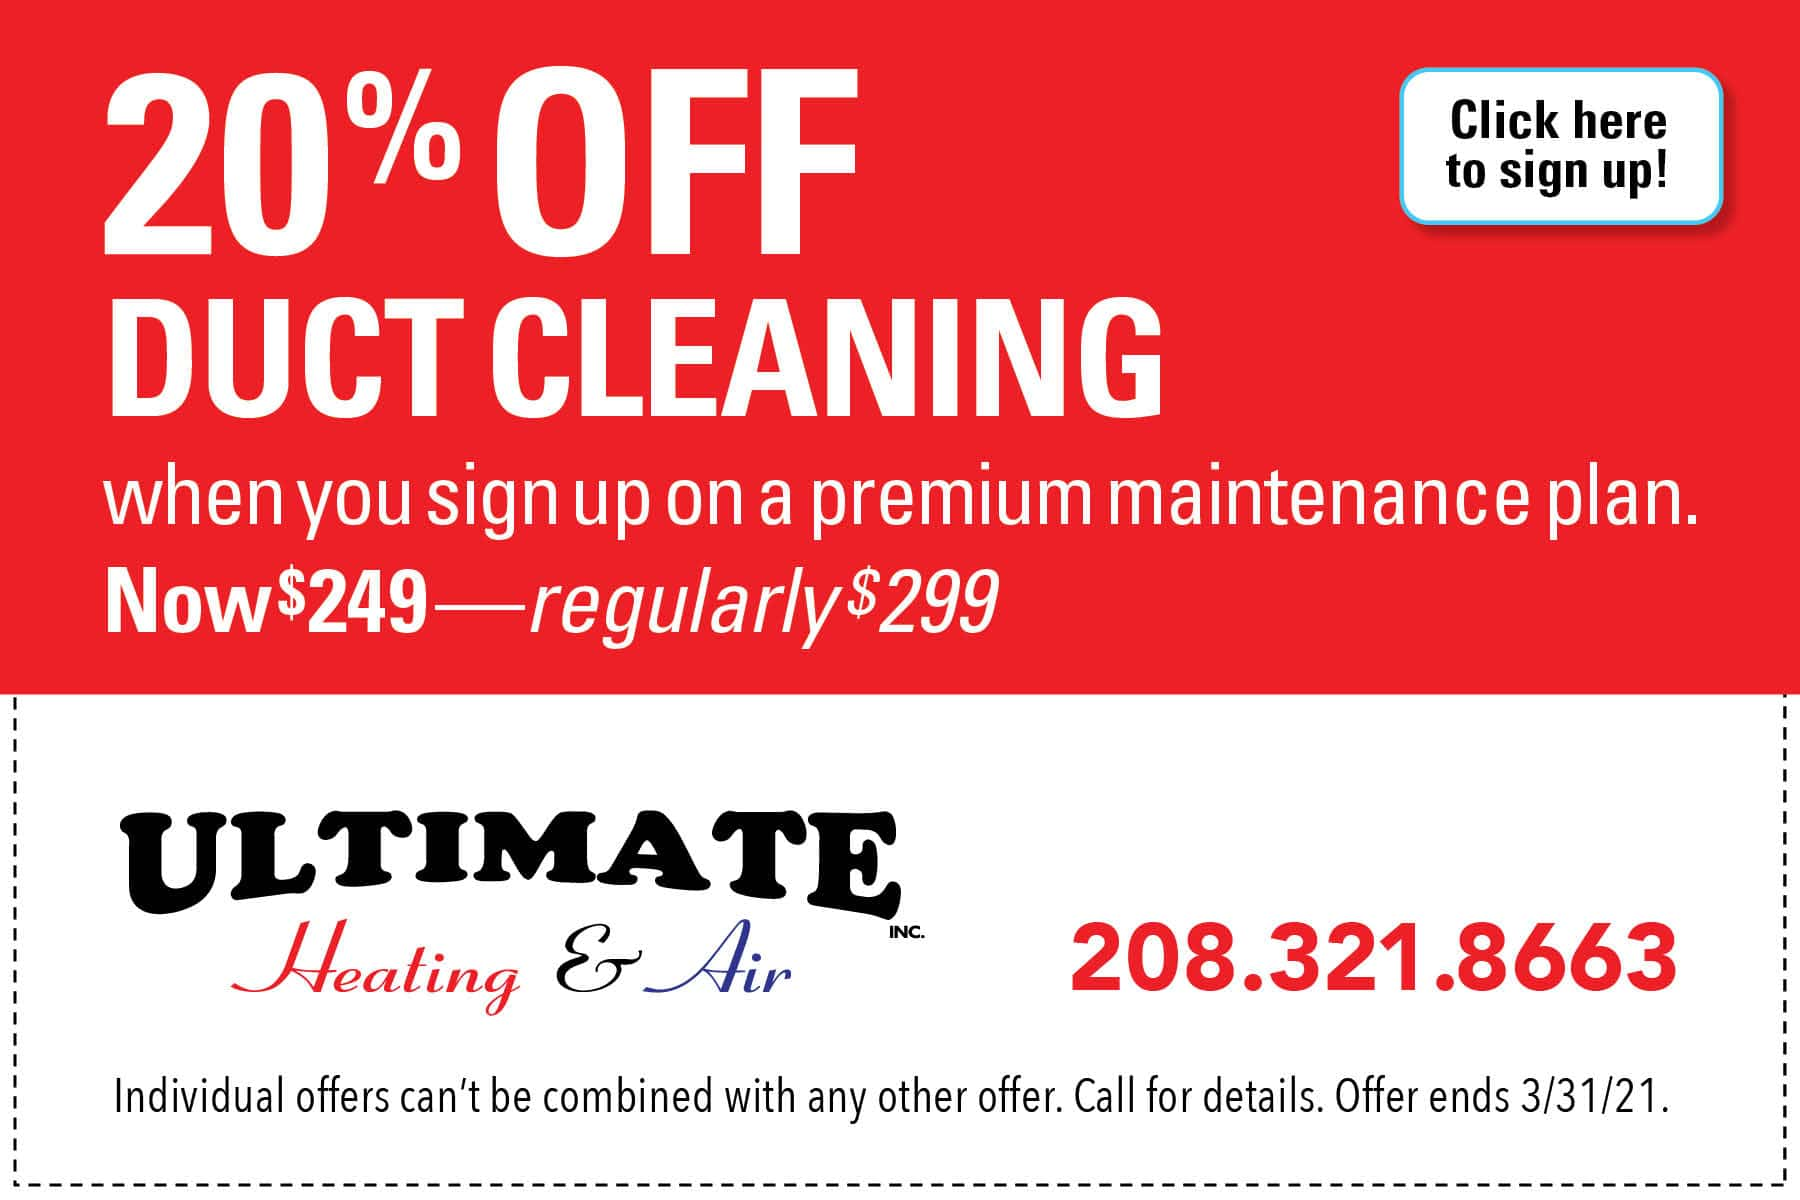 ULT 20-the-duct-cleaning-coupon